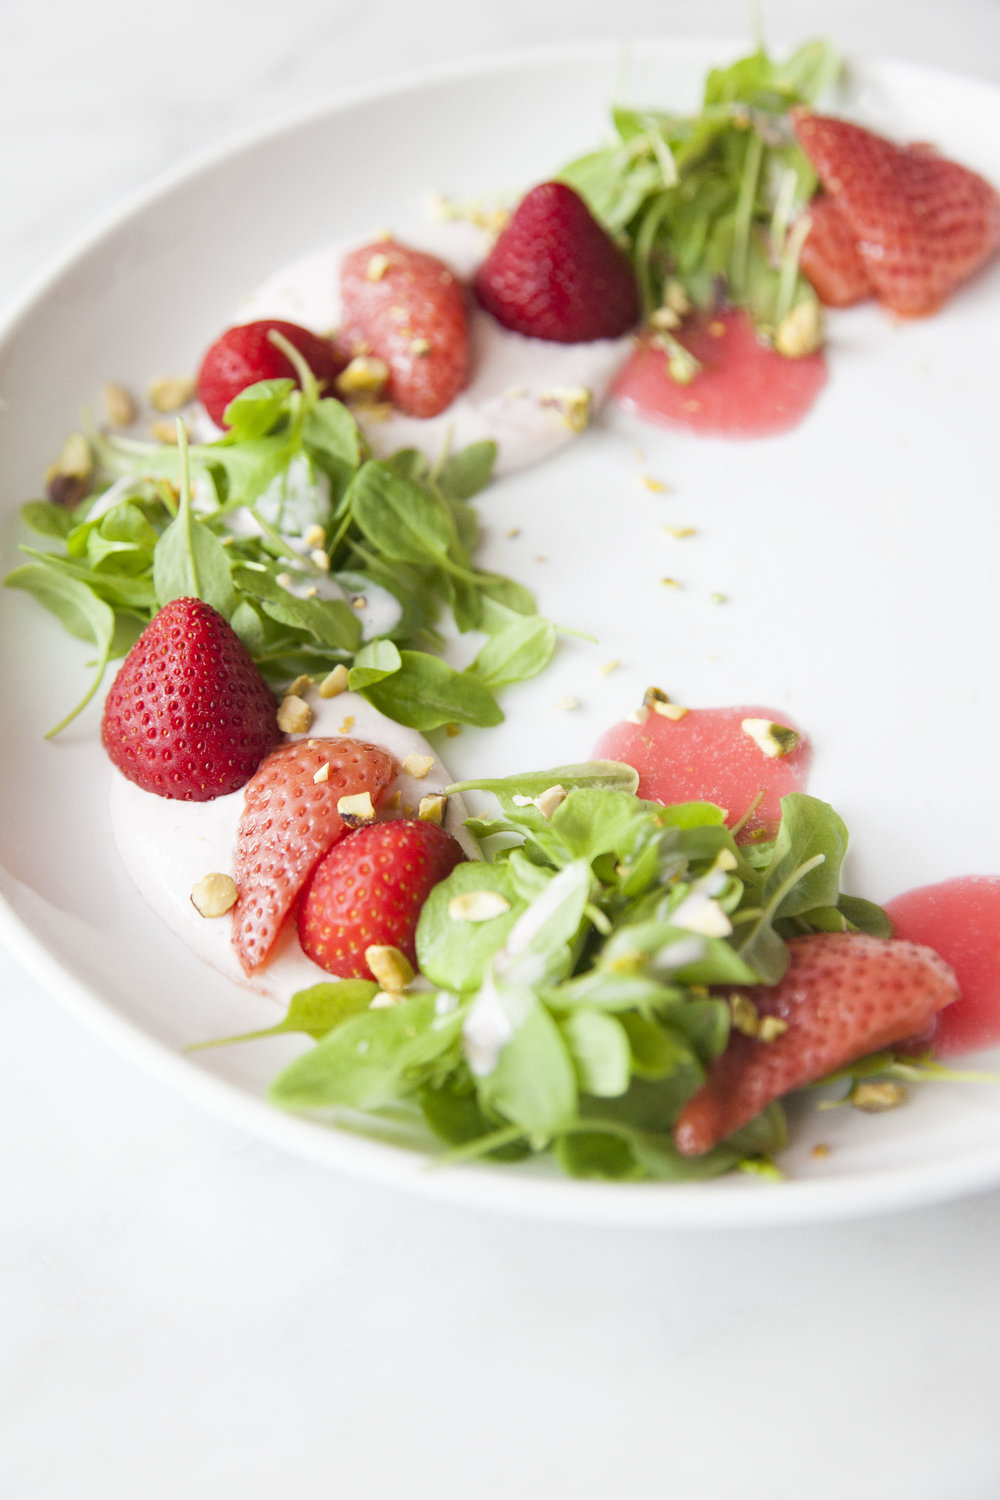 Strawberrysalad_002.jpg